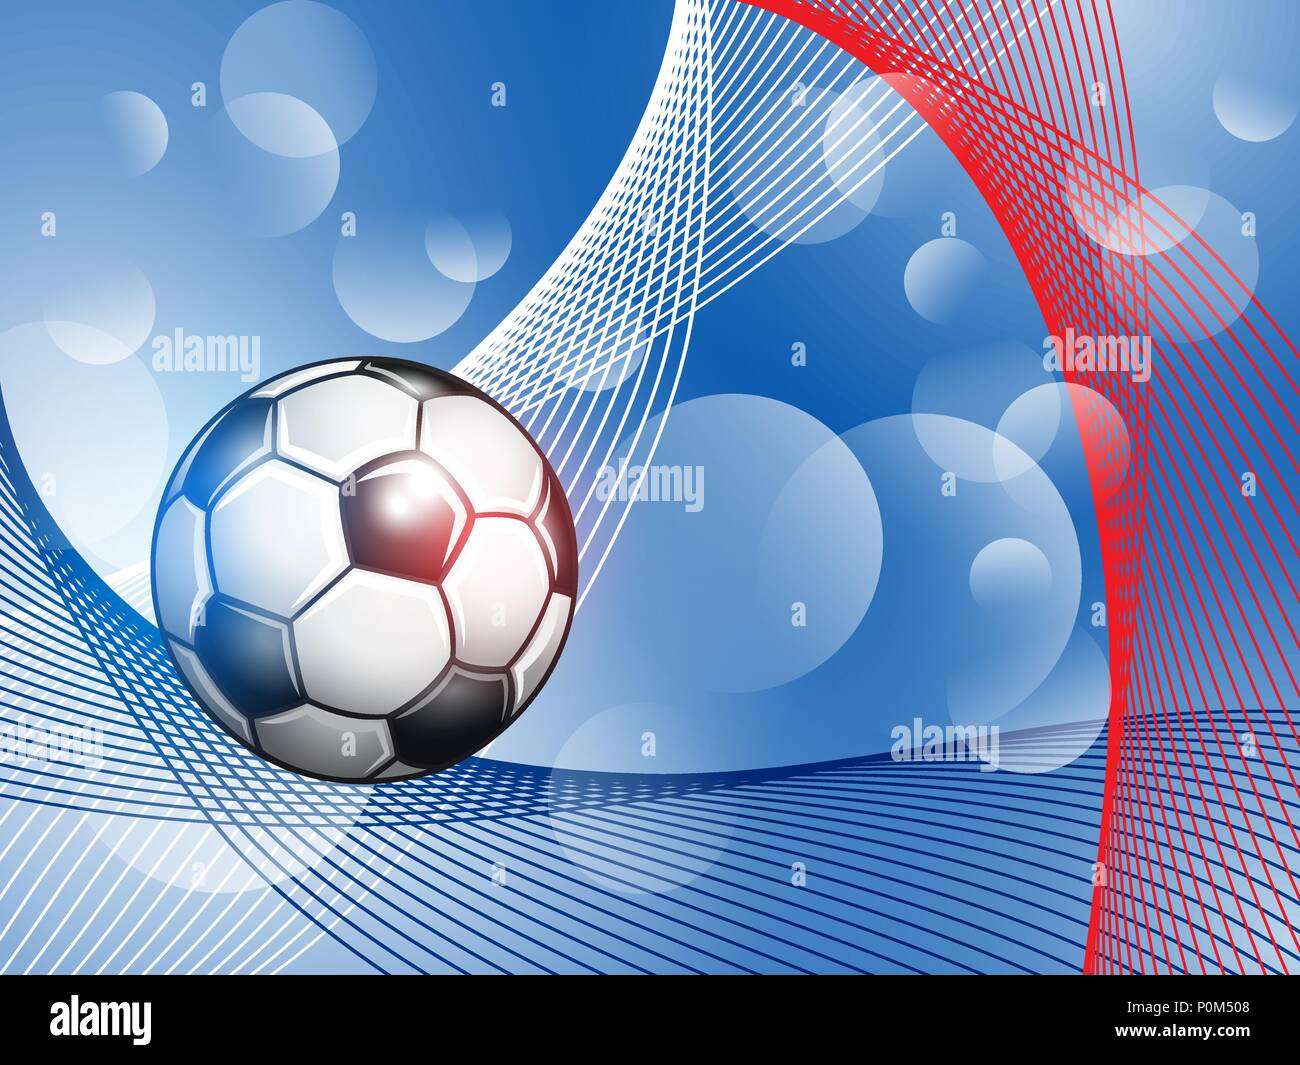 Soccer Championship abstract colorful background. - Stock Vector